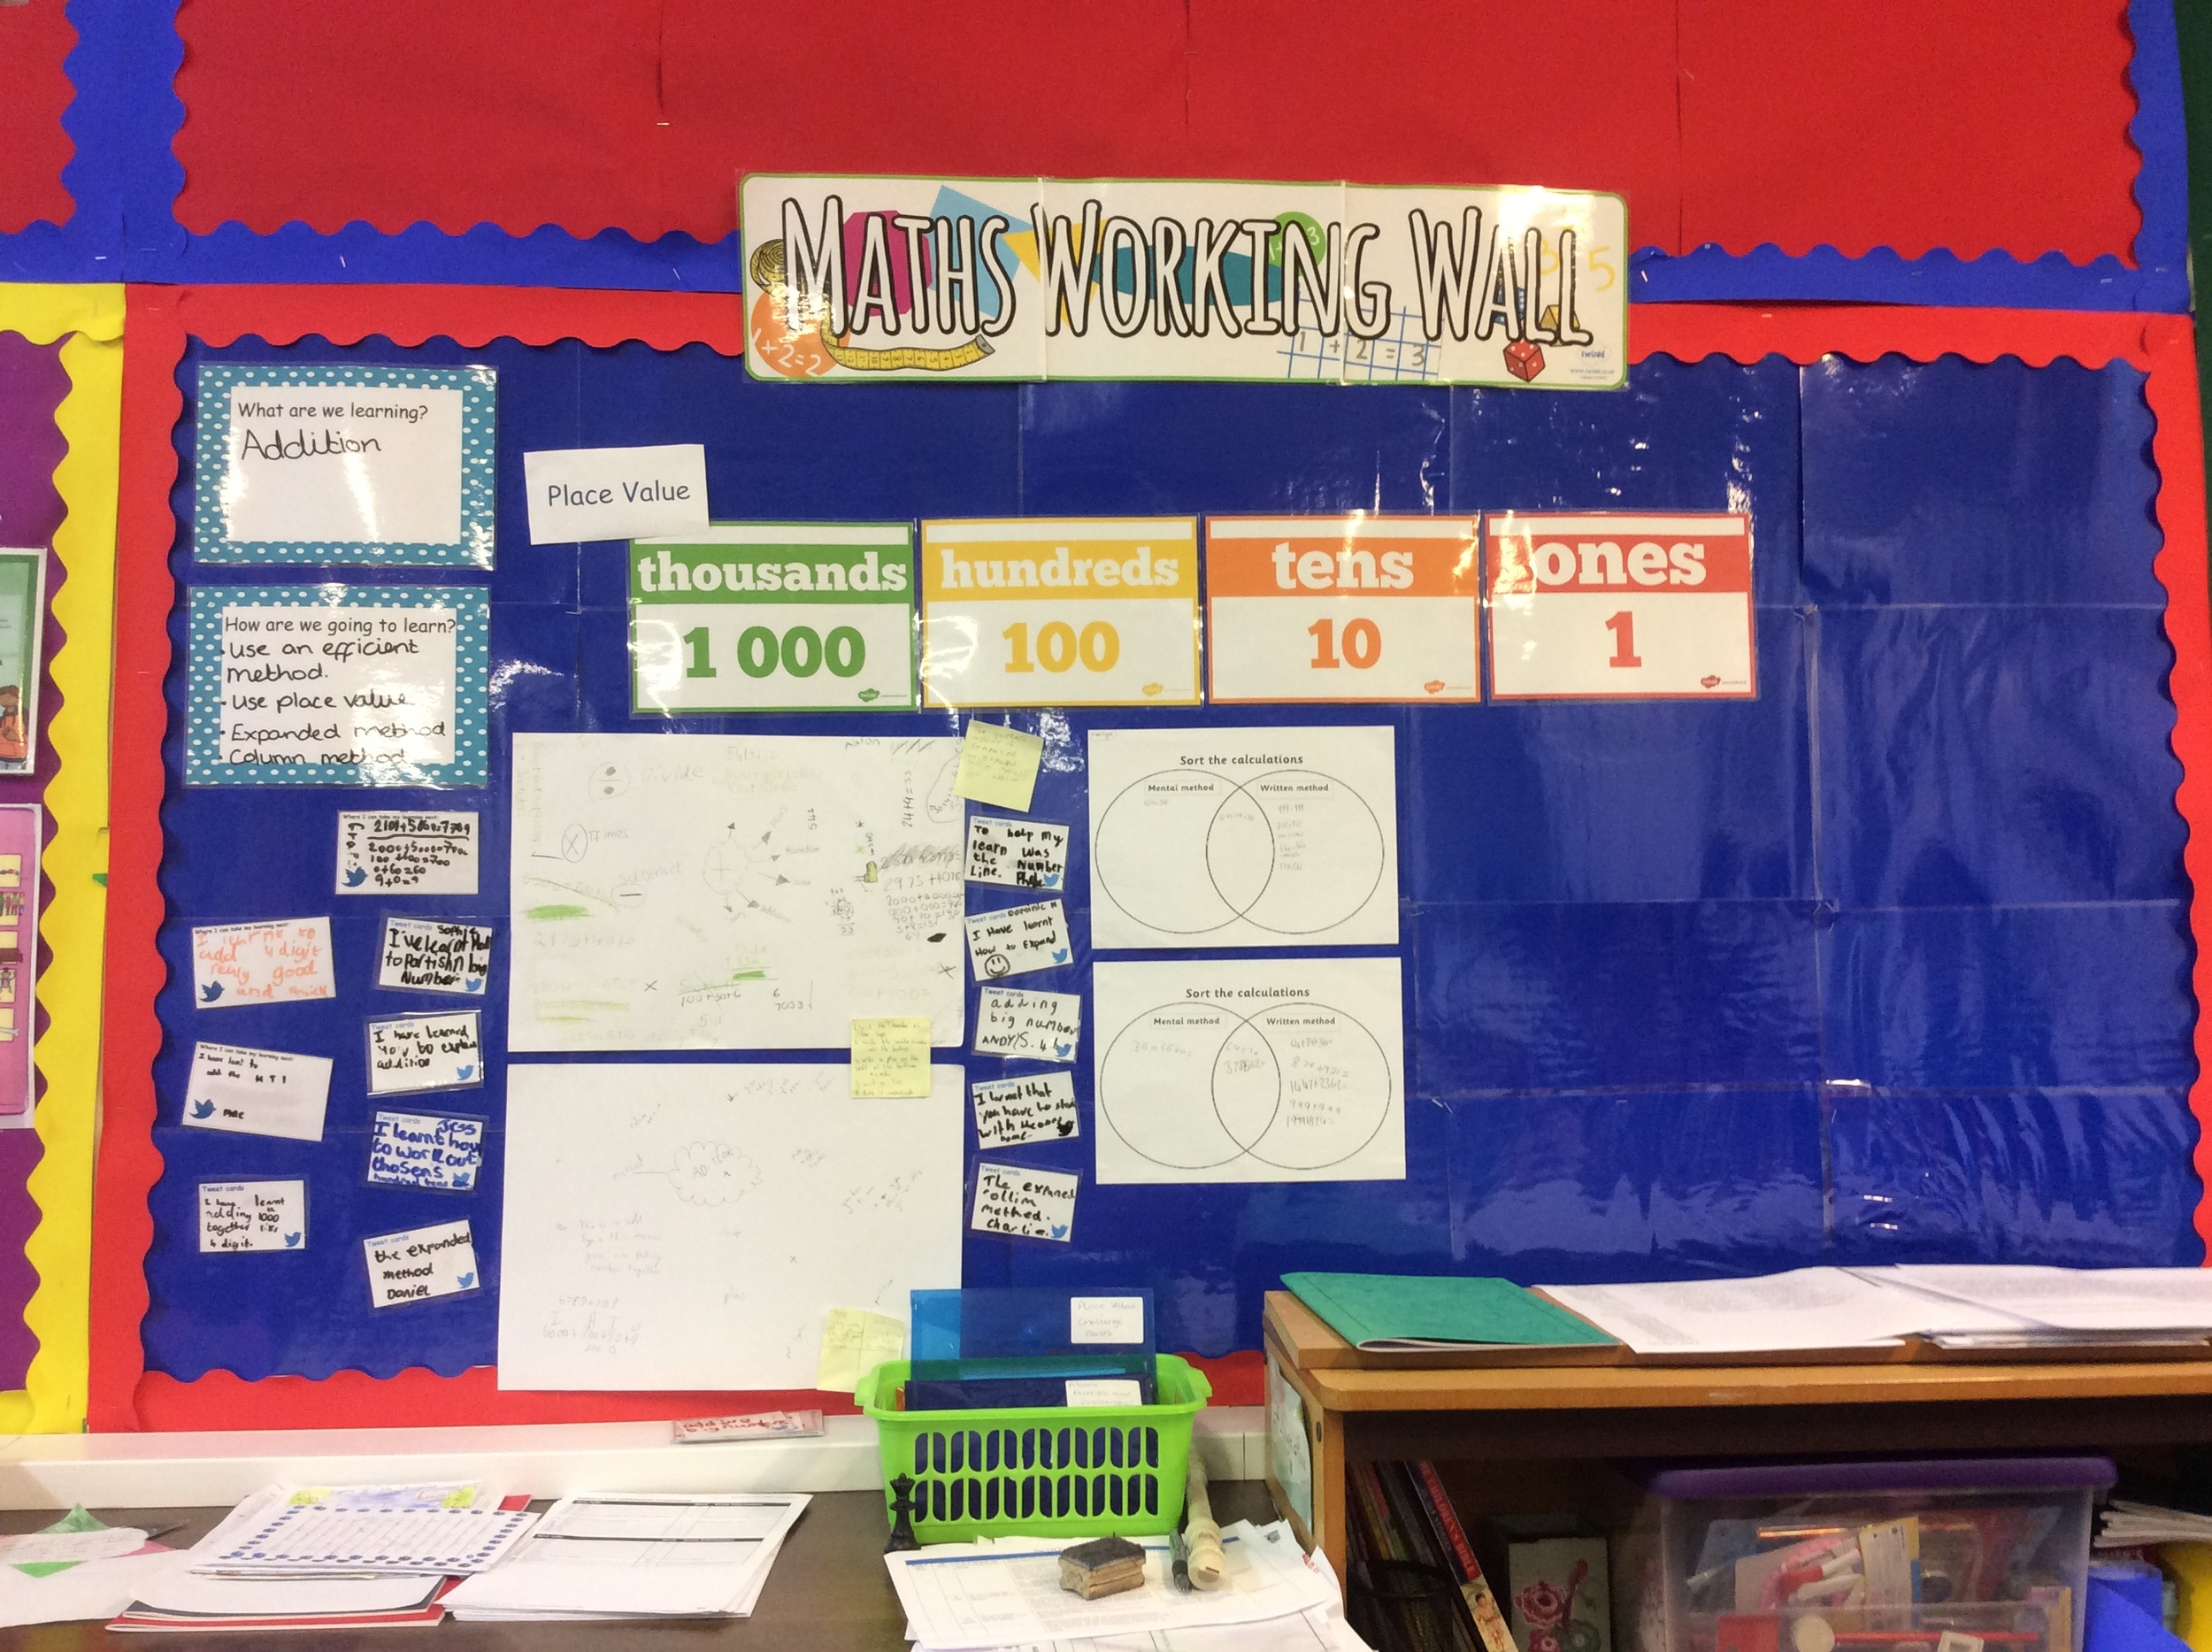 The working wall helps if we get stuck in maths